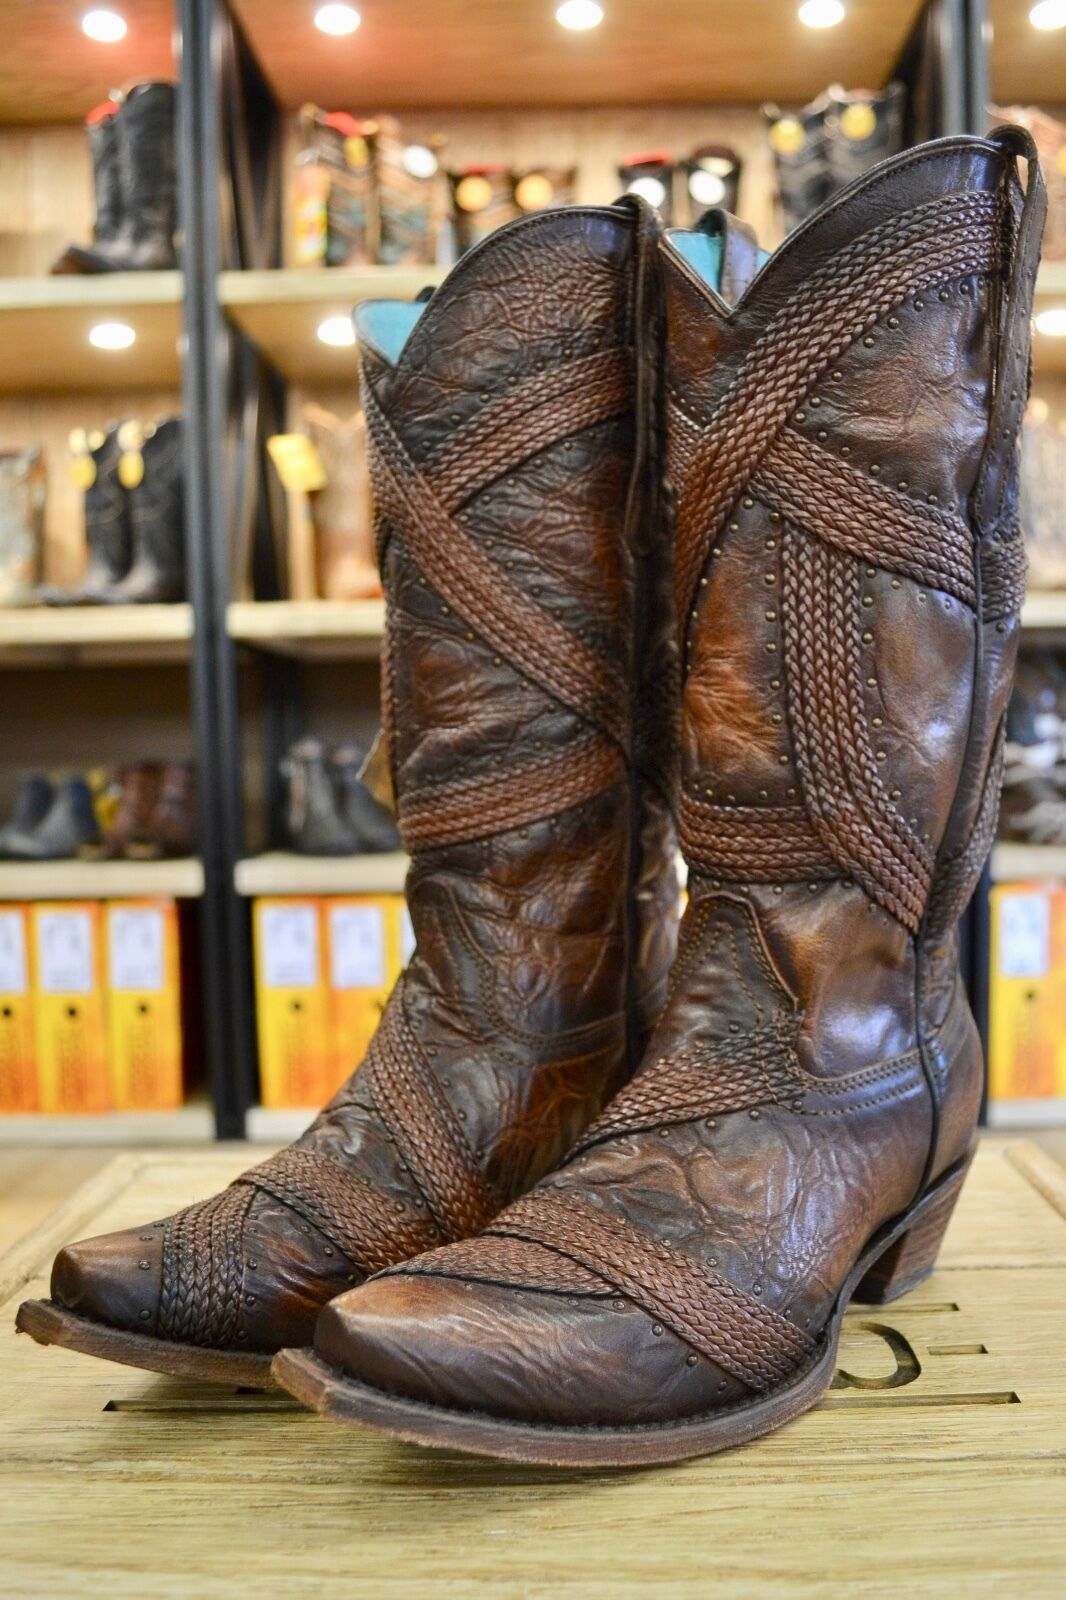 Corral Ladies Brown Braided Braided Braided Studded Snip Toe Cowgirl Boots C3179 LAST PAIRS SALE deb1b6